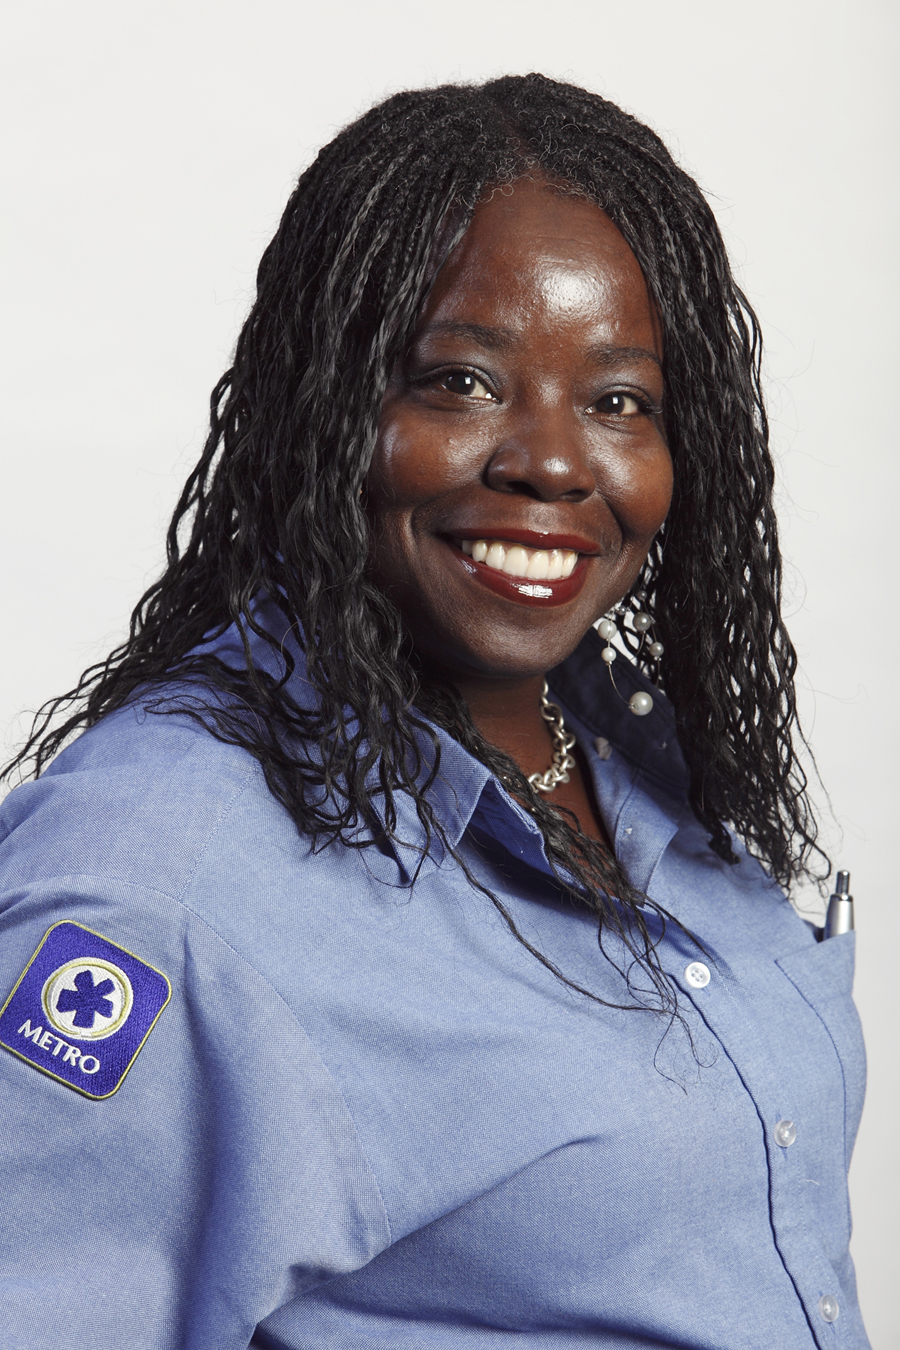 Cincinnati Metro bus operator Dianne Wyly honored for rescuing a child